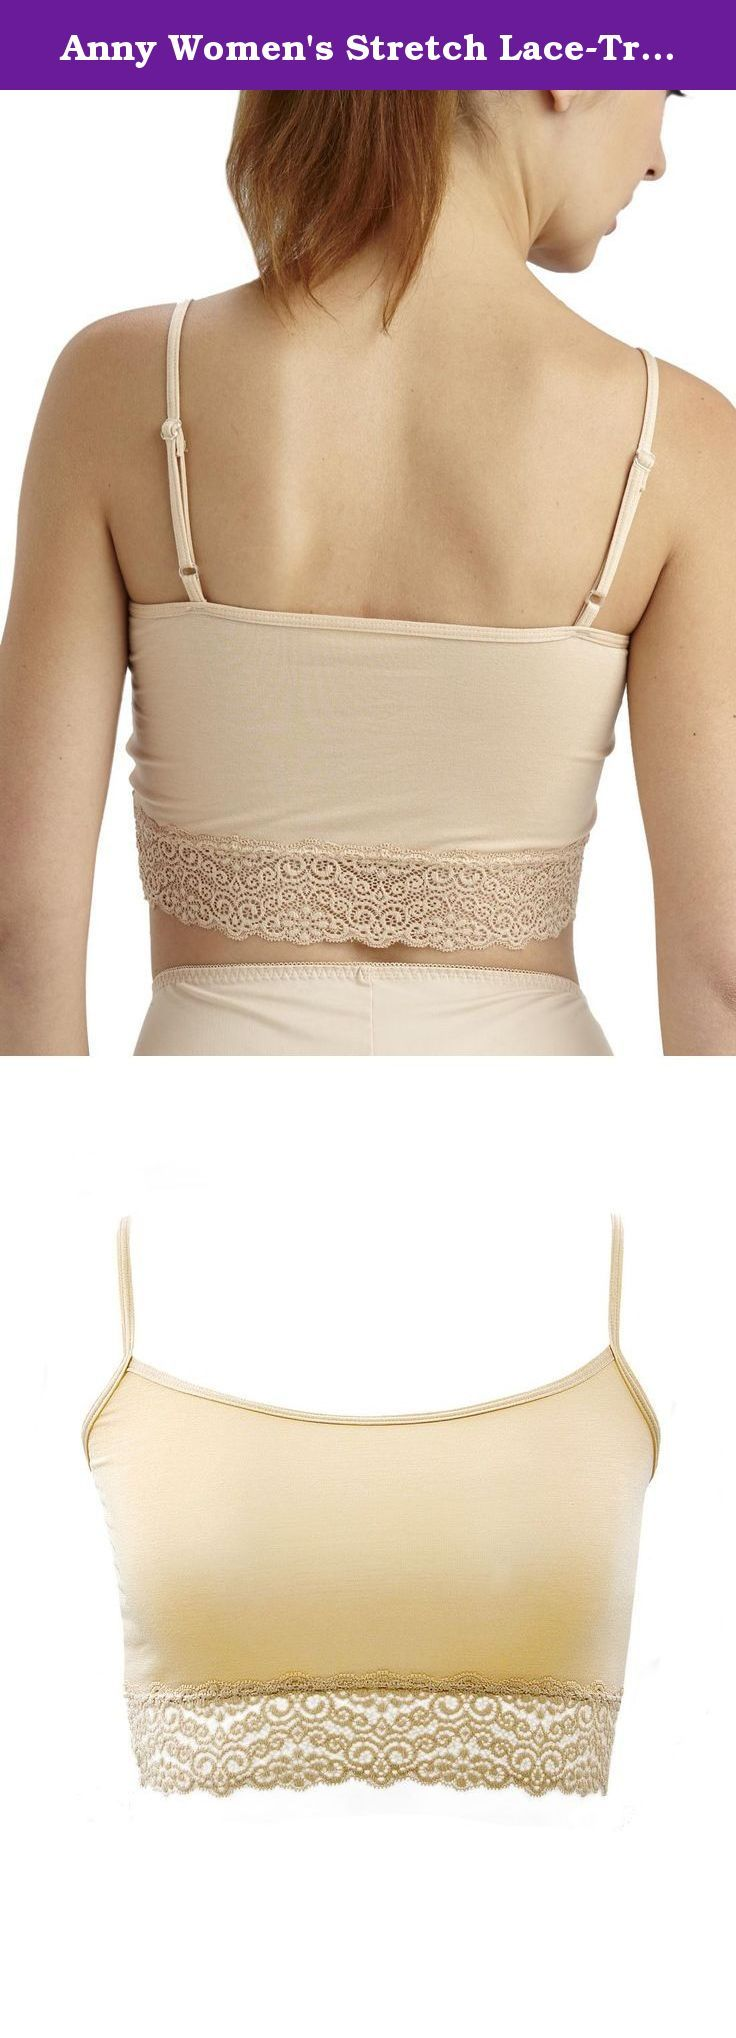 Anny Women's Stretch Lace-Trimmed Cami Crop Top Beige. This soft crop top has pretty stretch lace along the neckline and trim. Perfect for sleepwear, lounging and layering with other fashions for casual wear. **The cloth you receive will be tagged as original sizing tag since they are in Asian size. Usually smaller than US size. Tag may be different but measurements should be same.**.